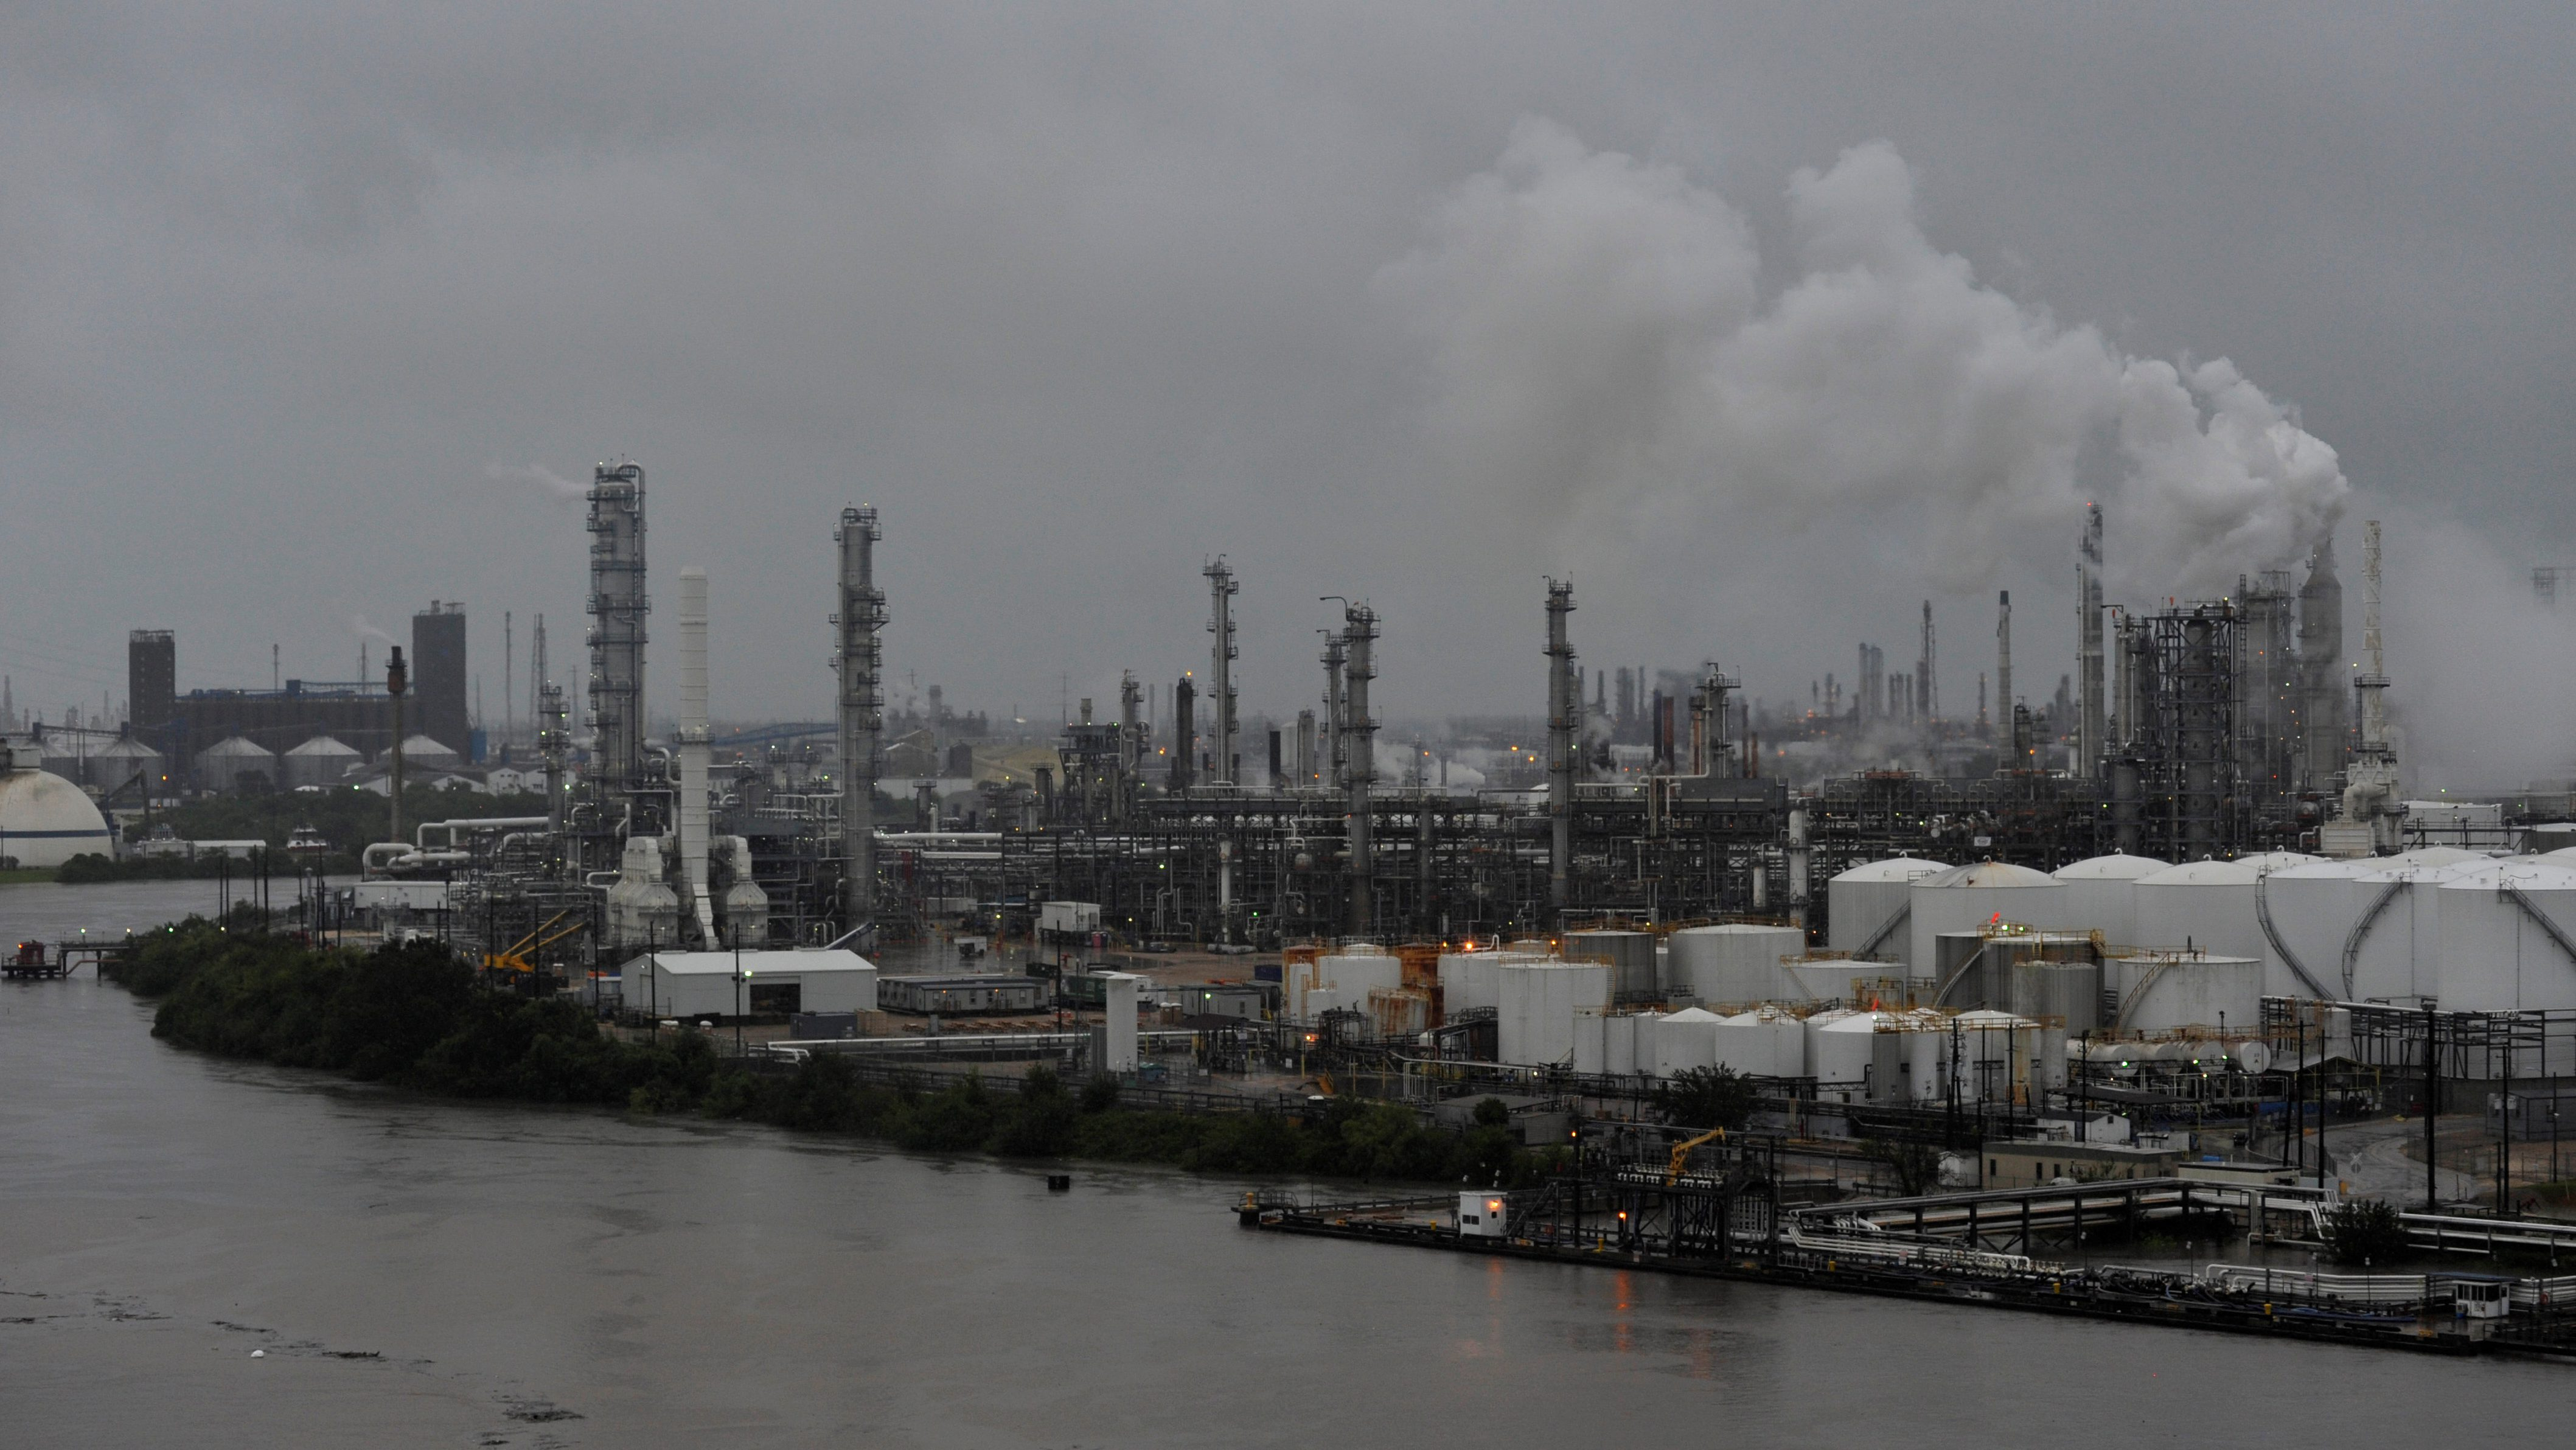 When refineries shut down, they typically emit far more toxins than normal.